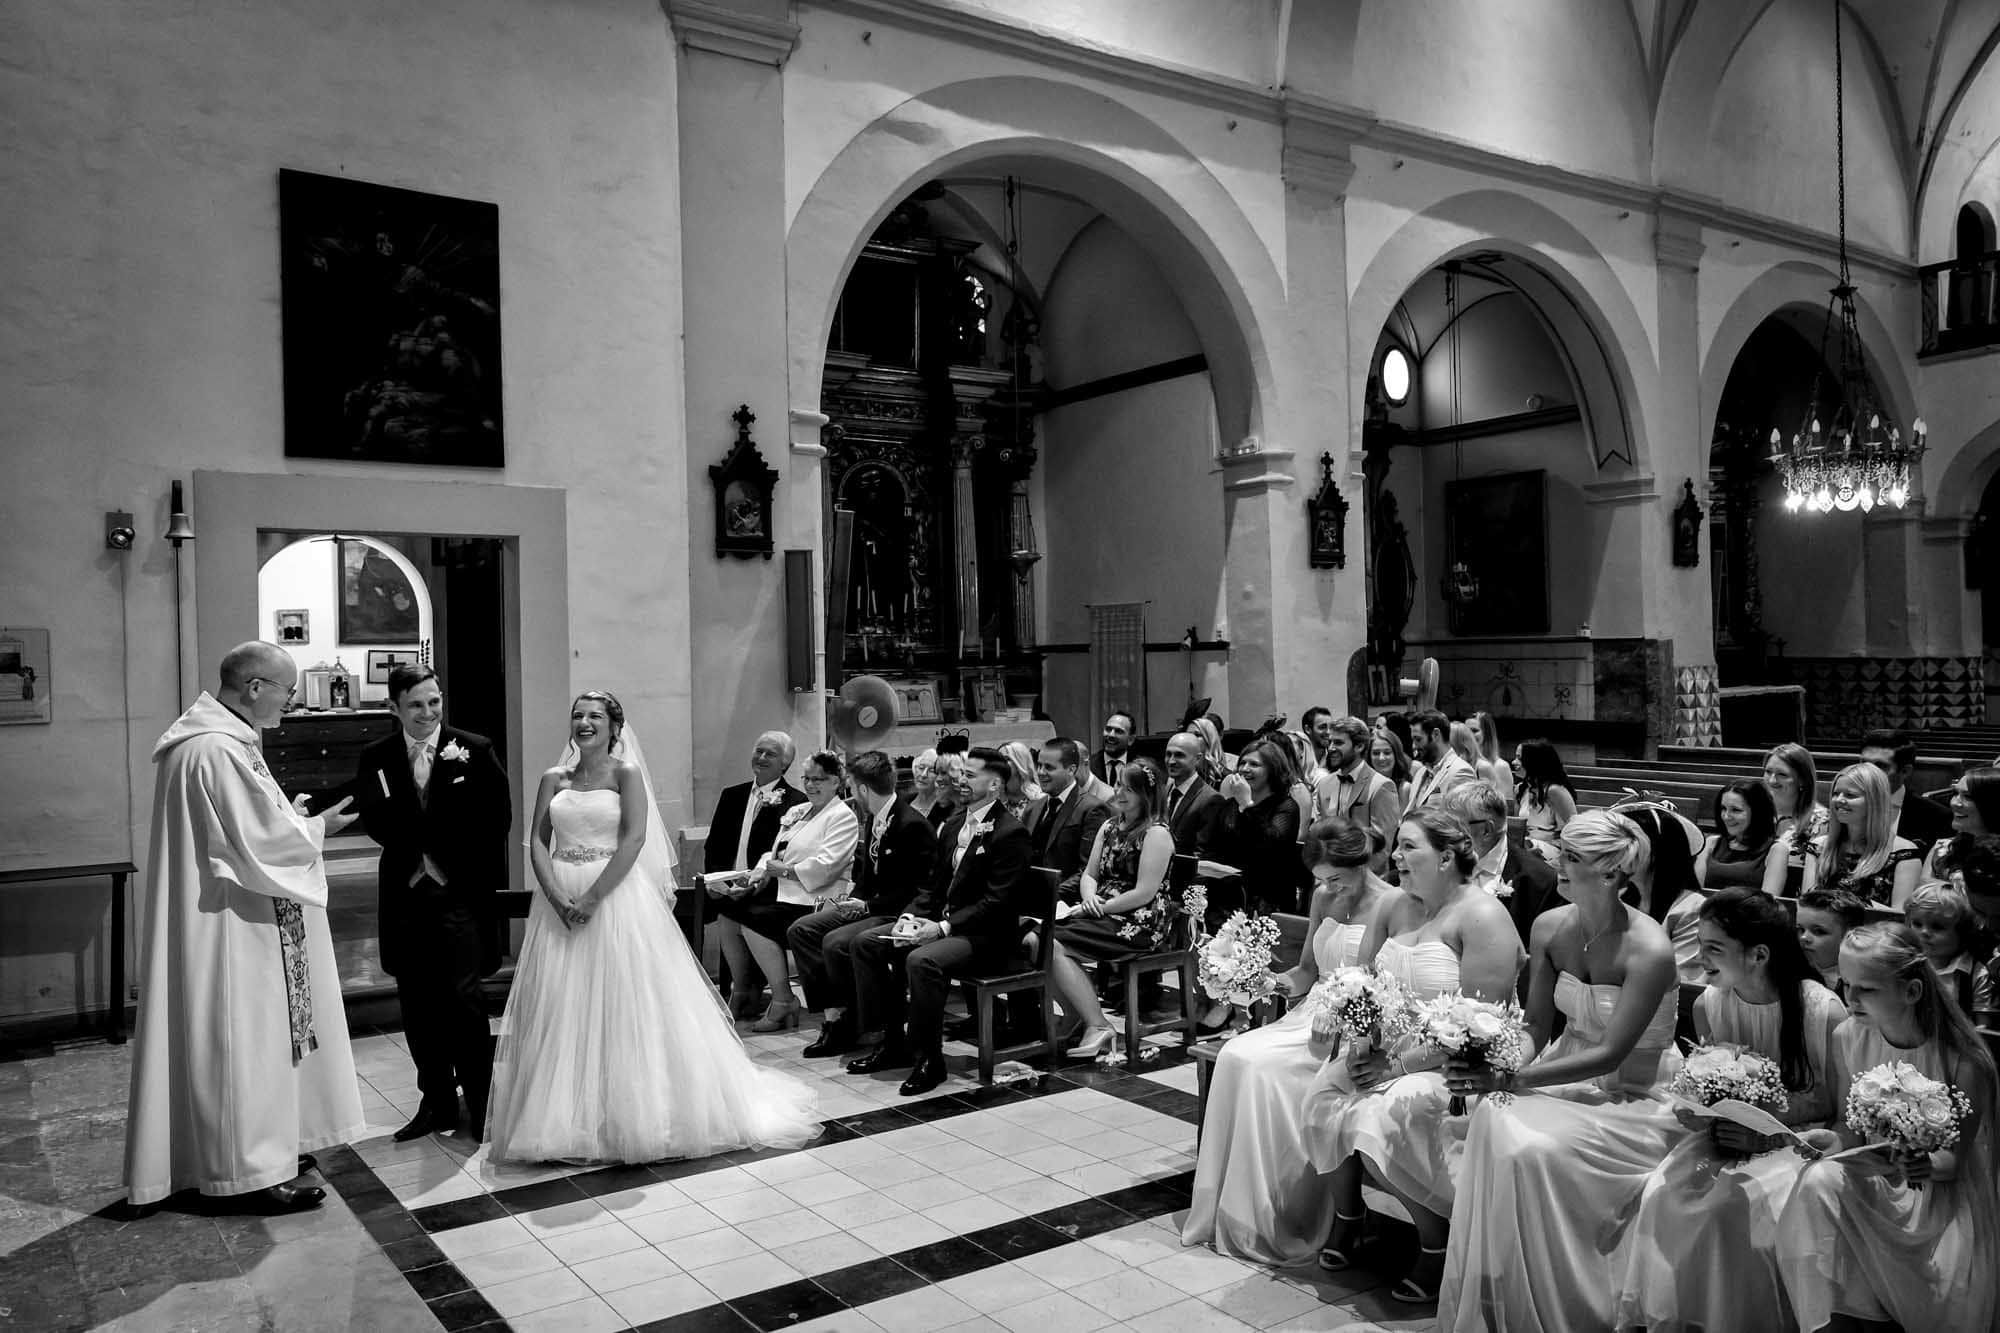 An amusing moment during the wedding ceremony at the church in Fornalutx